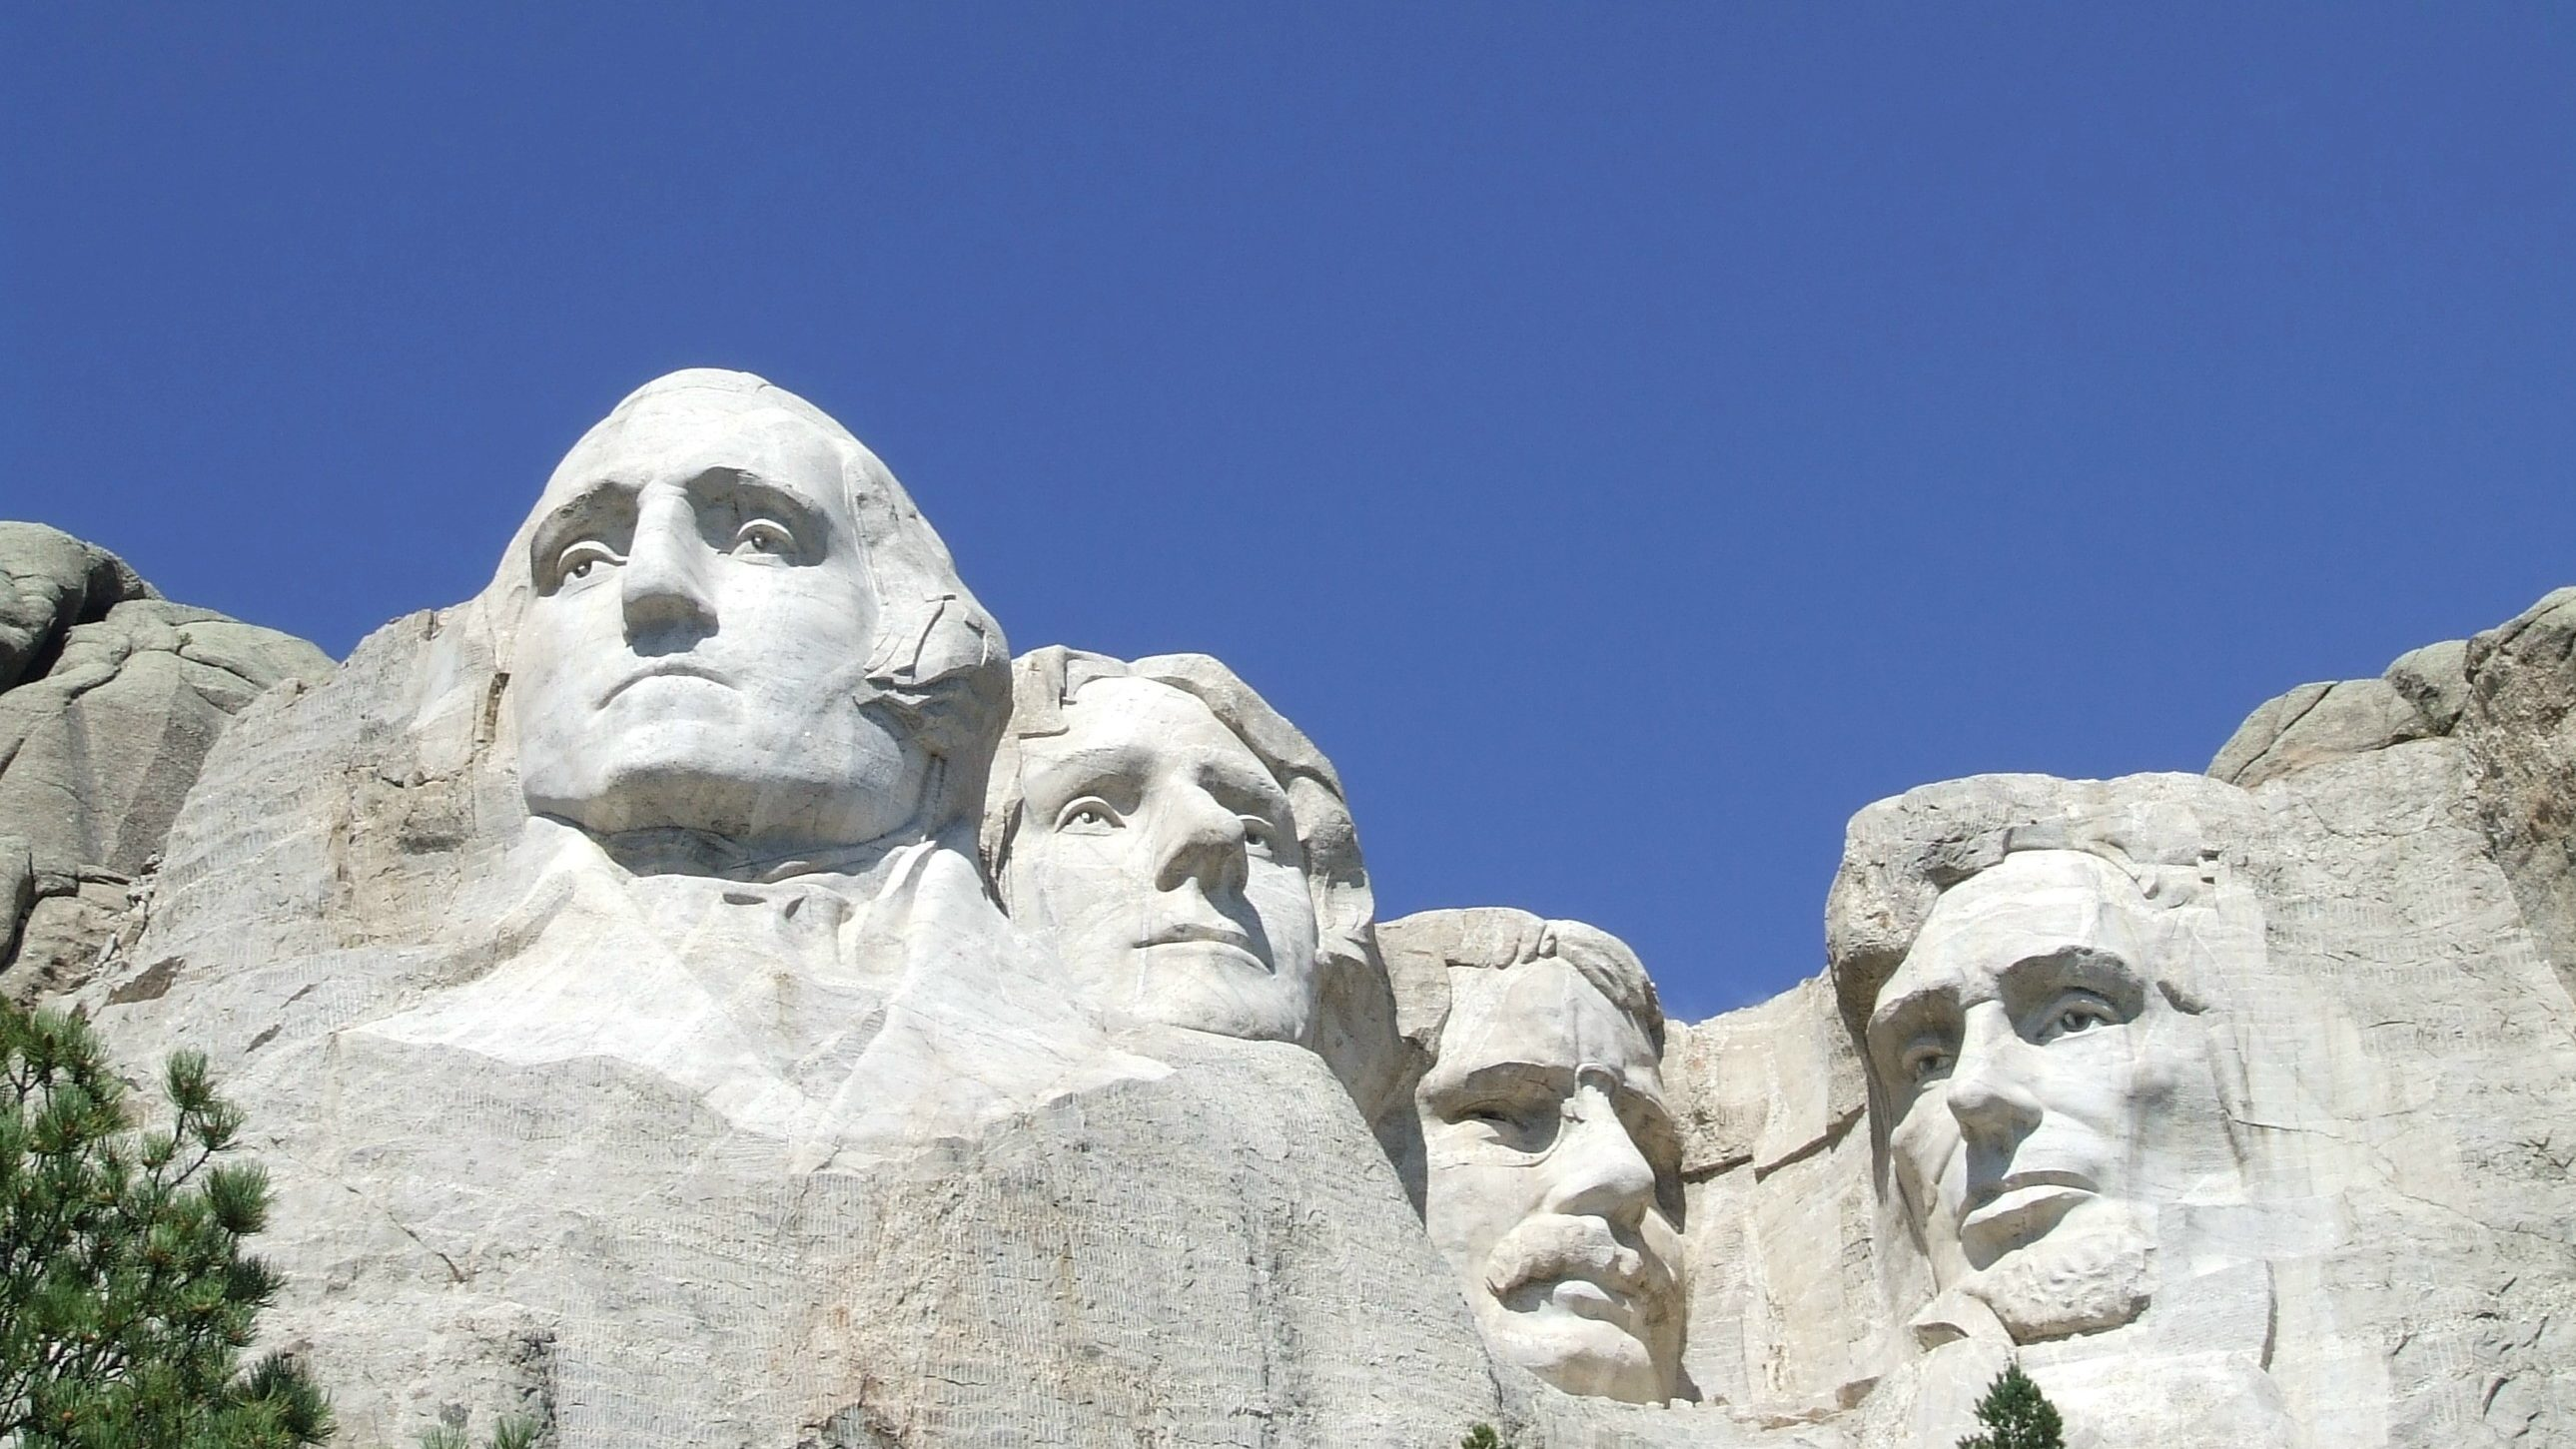 U.S. presidents George Washington, Thomas Jefferson, Theodore Roosevelt and Abraham Lincoln are sculpted on Mount Rushmore National Memorial in the Black Hills region of South Dakota, U.S. in this U.S. National Park Service photo taken on April 12, 2013.